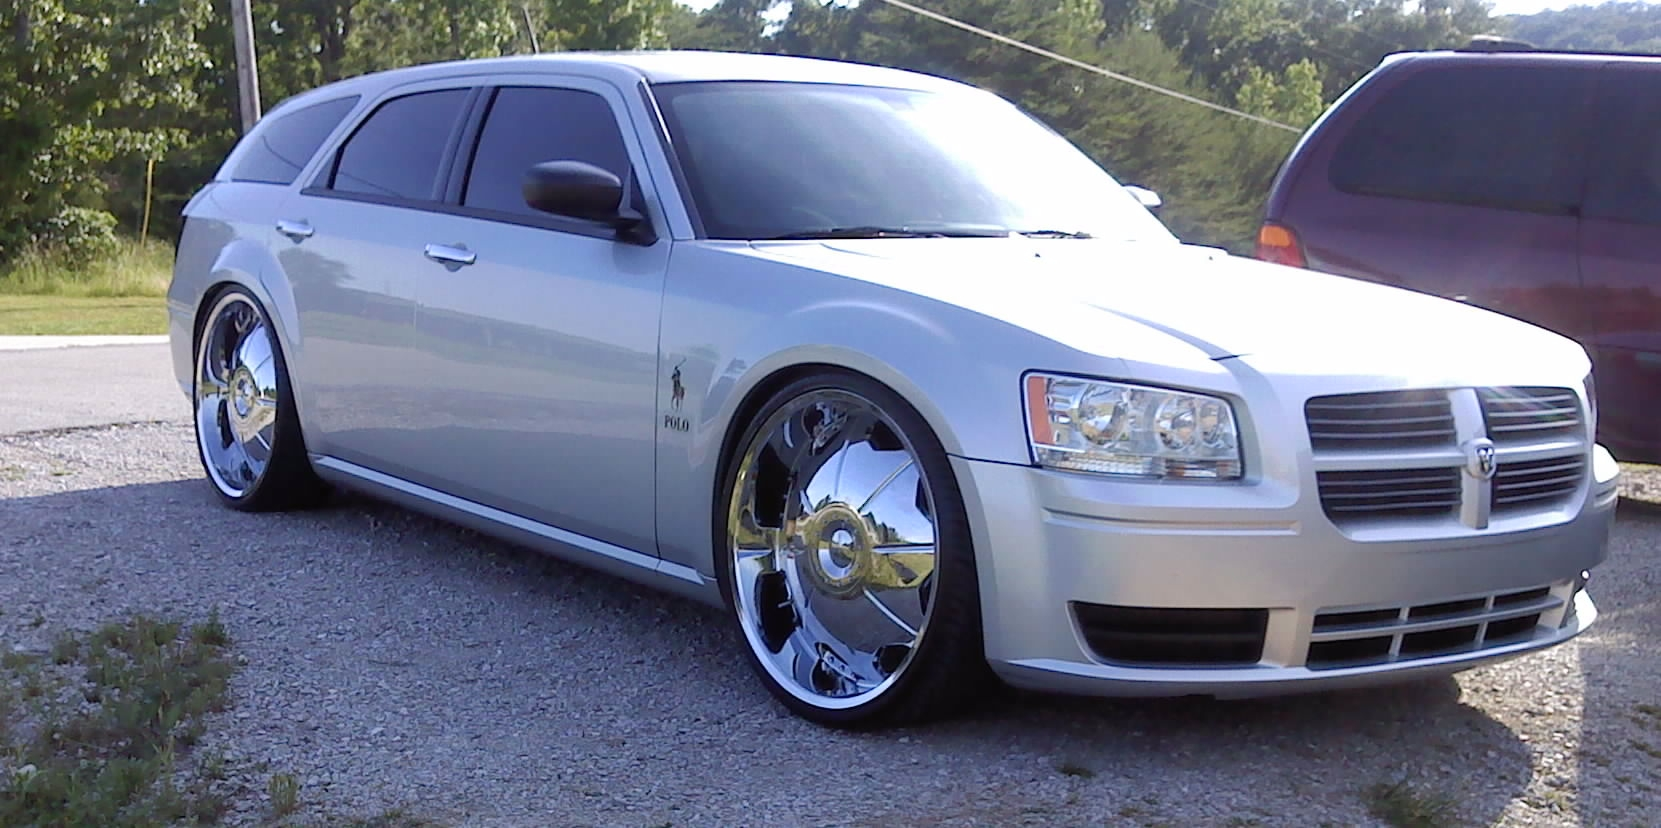 midnight20's 2008 Dodge Magnum